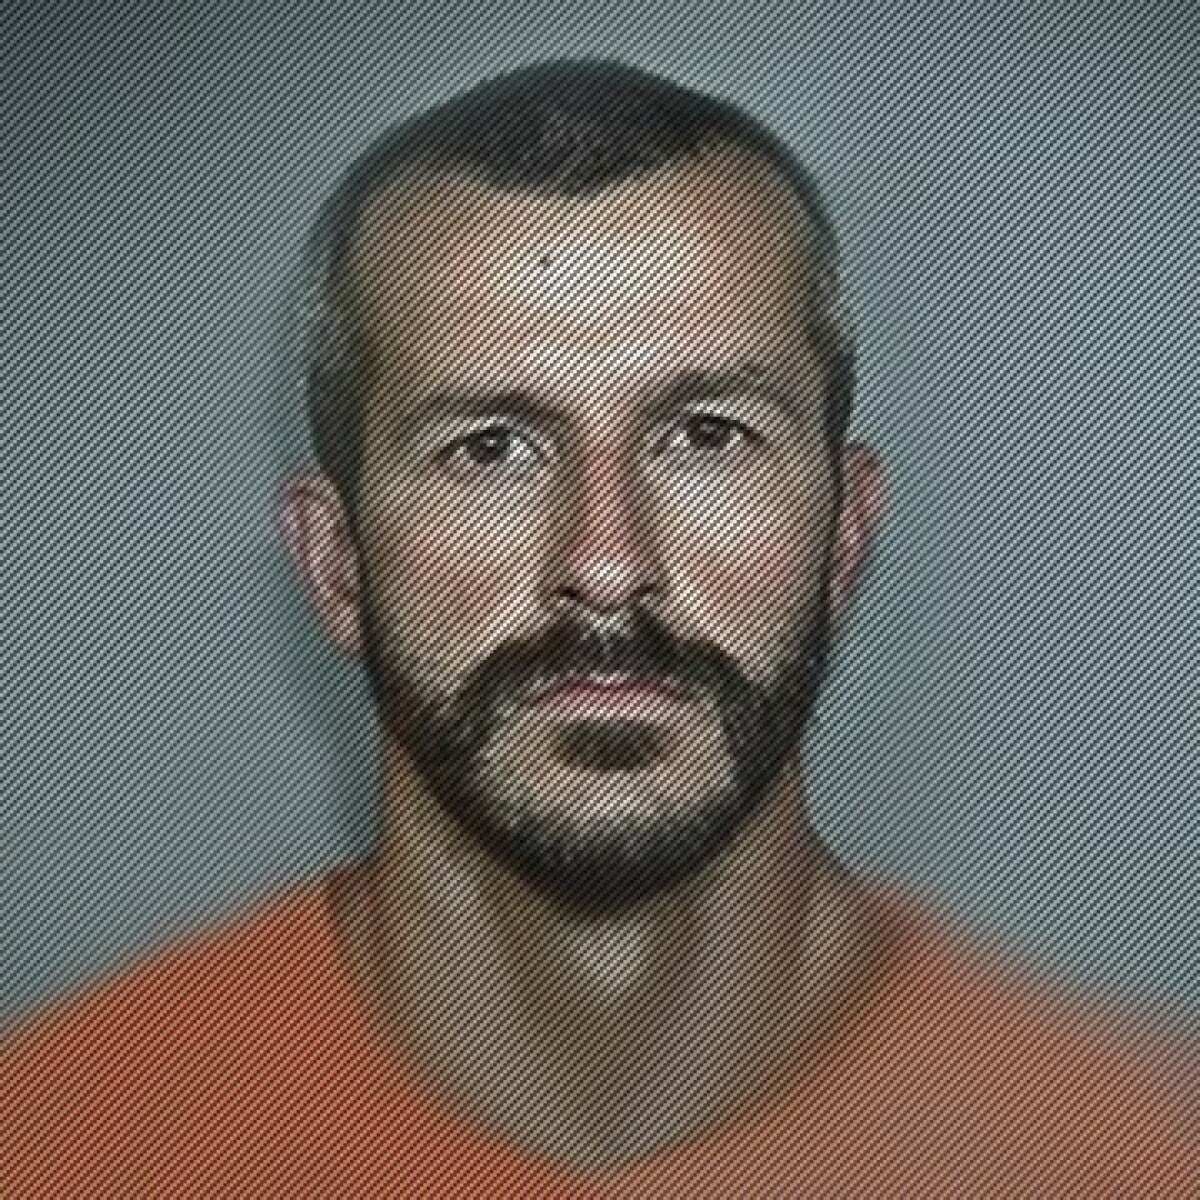 Chris Watts Murder Case: Everything We Know So Far About